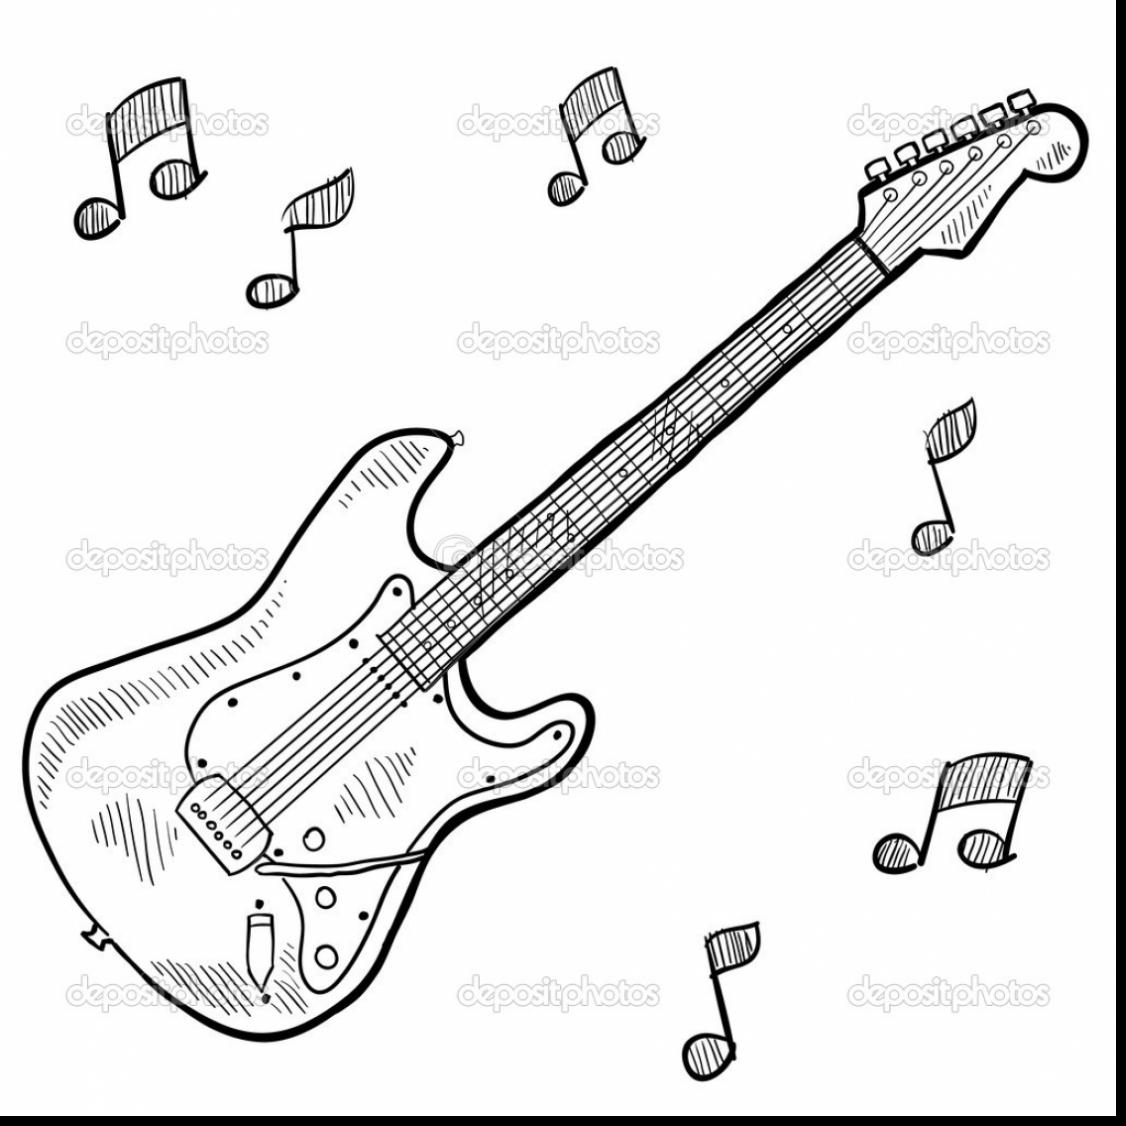 Guitar Drawing Images at GetDrawings.com | Free for personal use ...